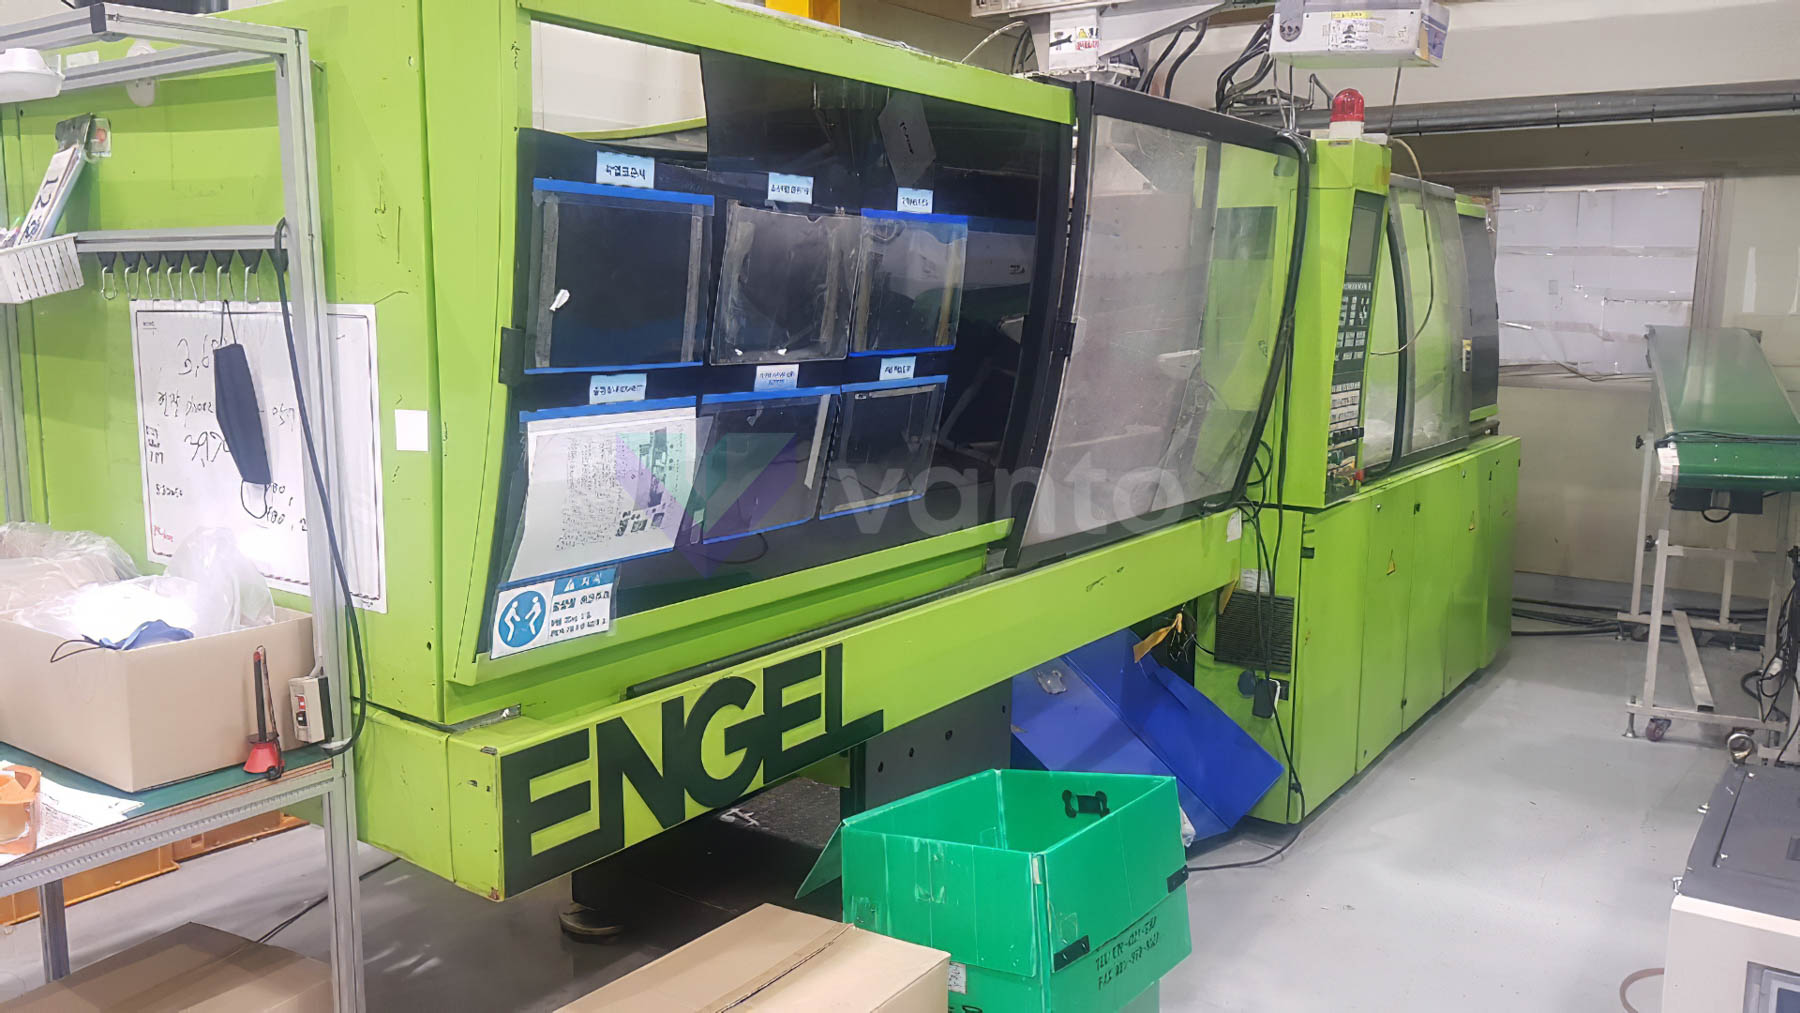 ENGEL ES 330 / 125 HL PRO SERIES 125t injection molding machine (2000) id10405